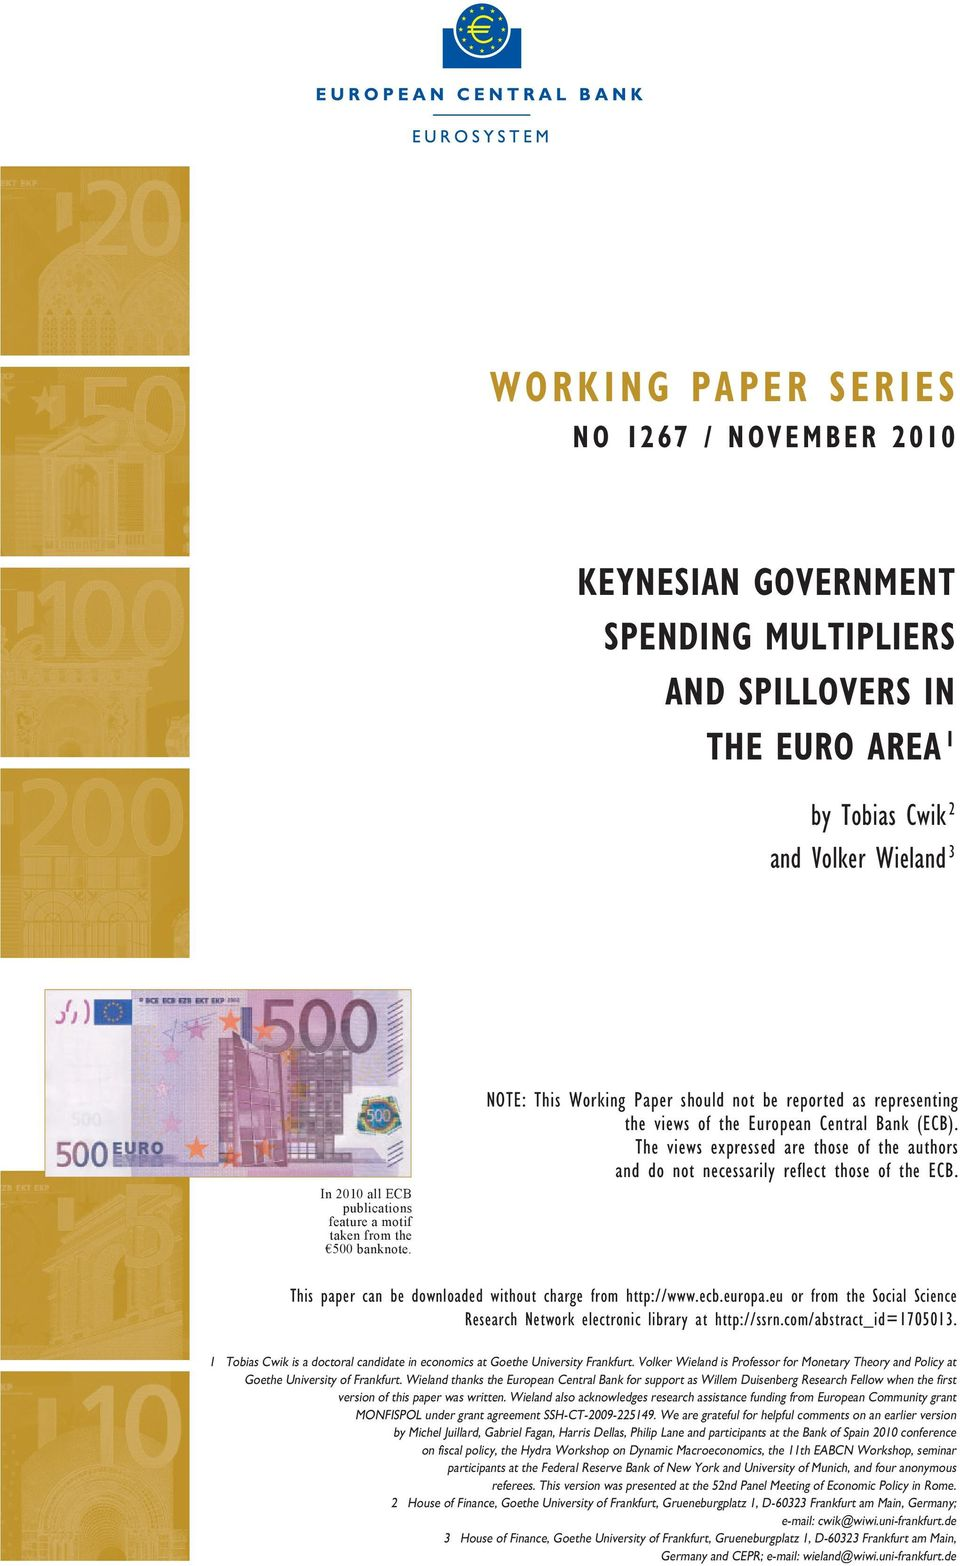 The views expressed are those of the authors and do not necessarily reflect those of the. This paper can be downloaded without charge from http://www.ecb.europa.